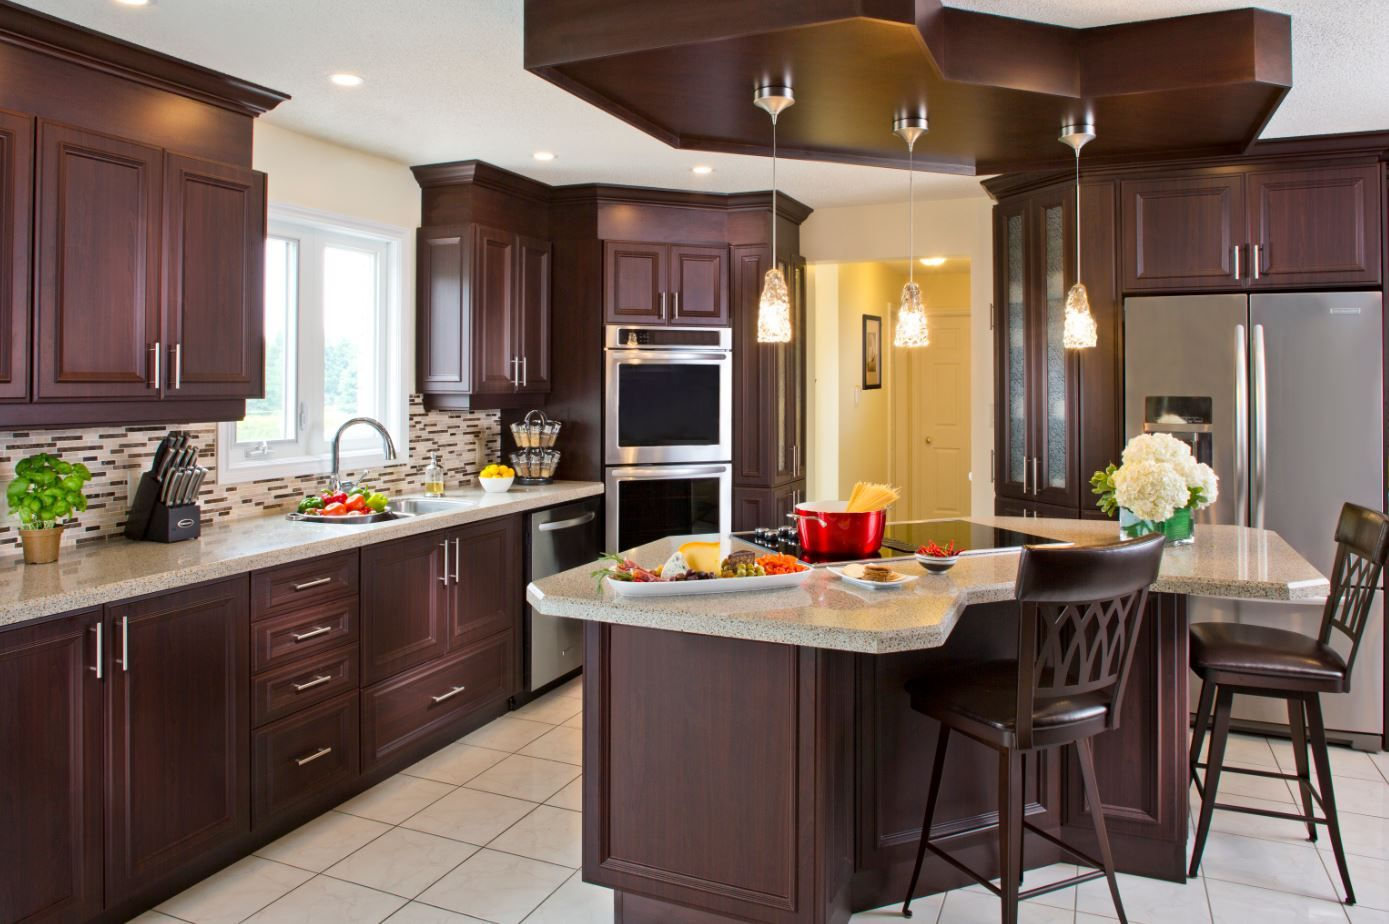 Counter King Ivory With Bevelled Edge Cabinetry Rtf Renaissance Flat In Chocolate Maple Kitchenm Kitchen Remodel Kitchen Design Refacing Kitchen Cabinets